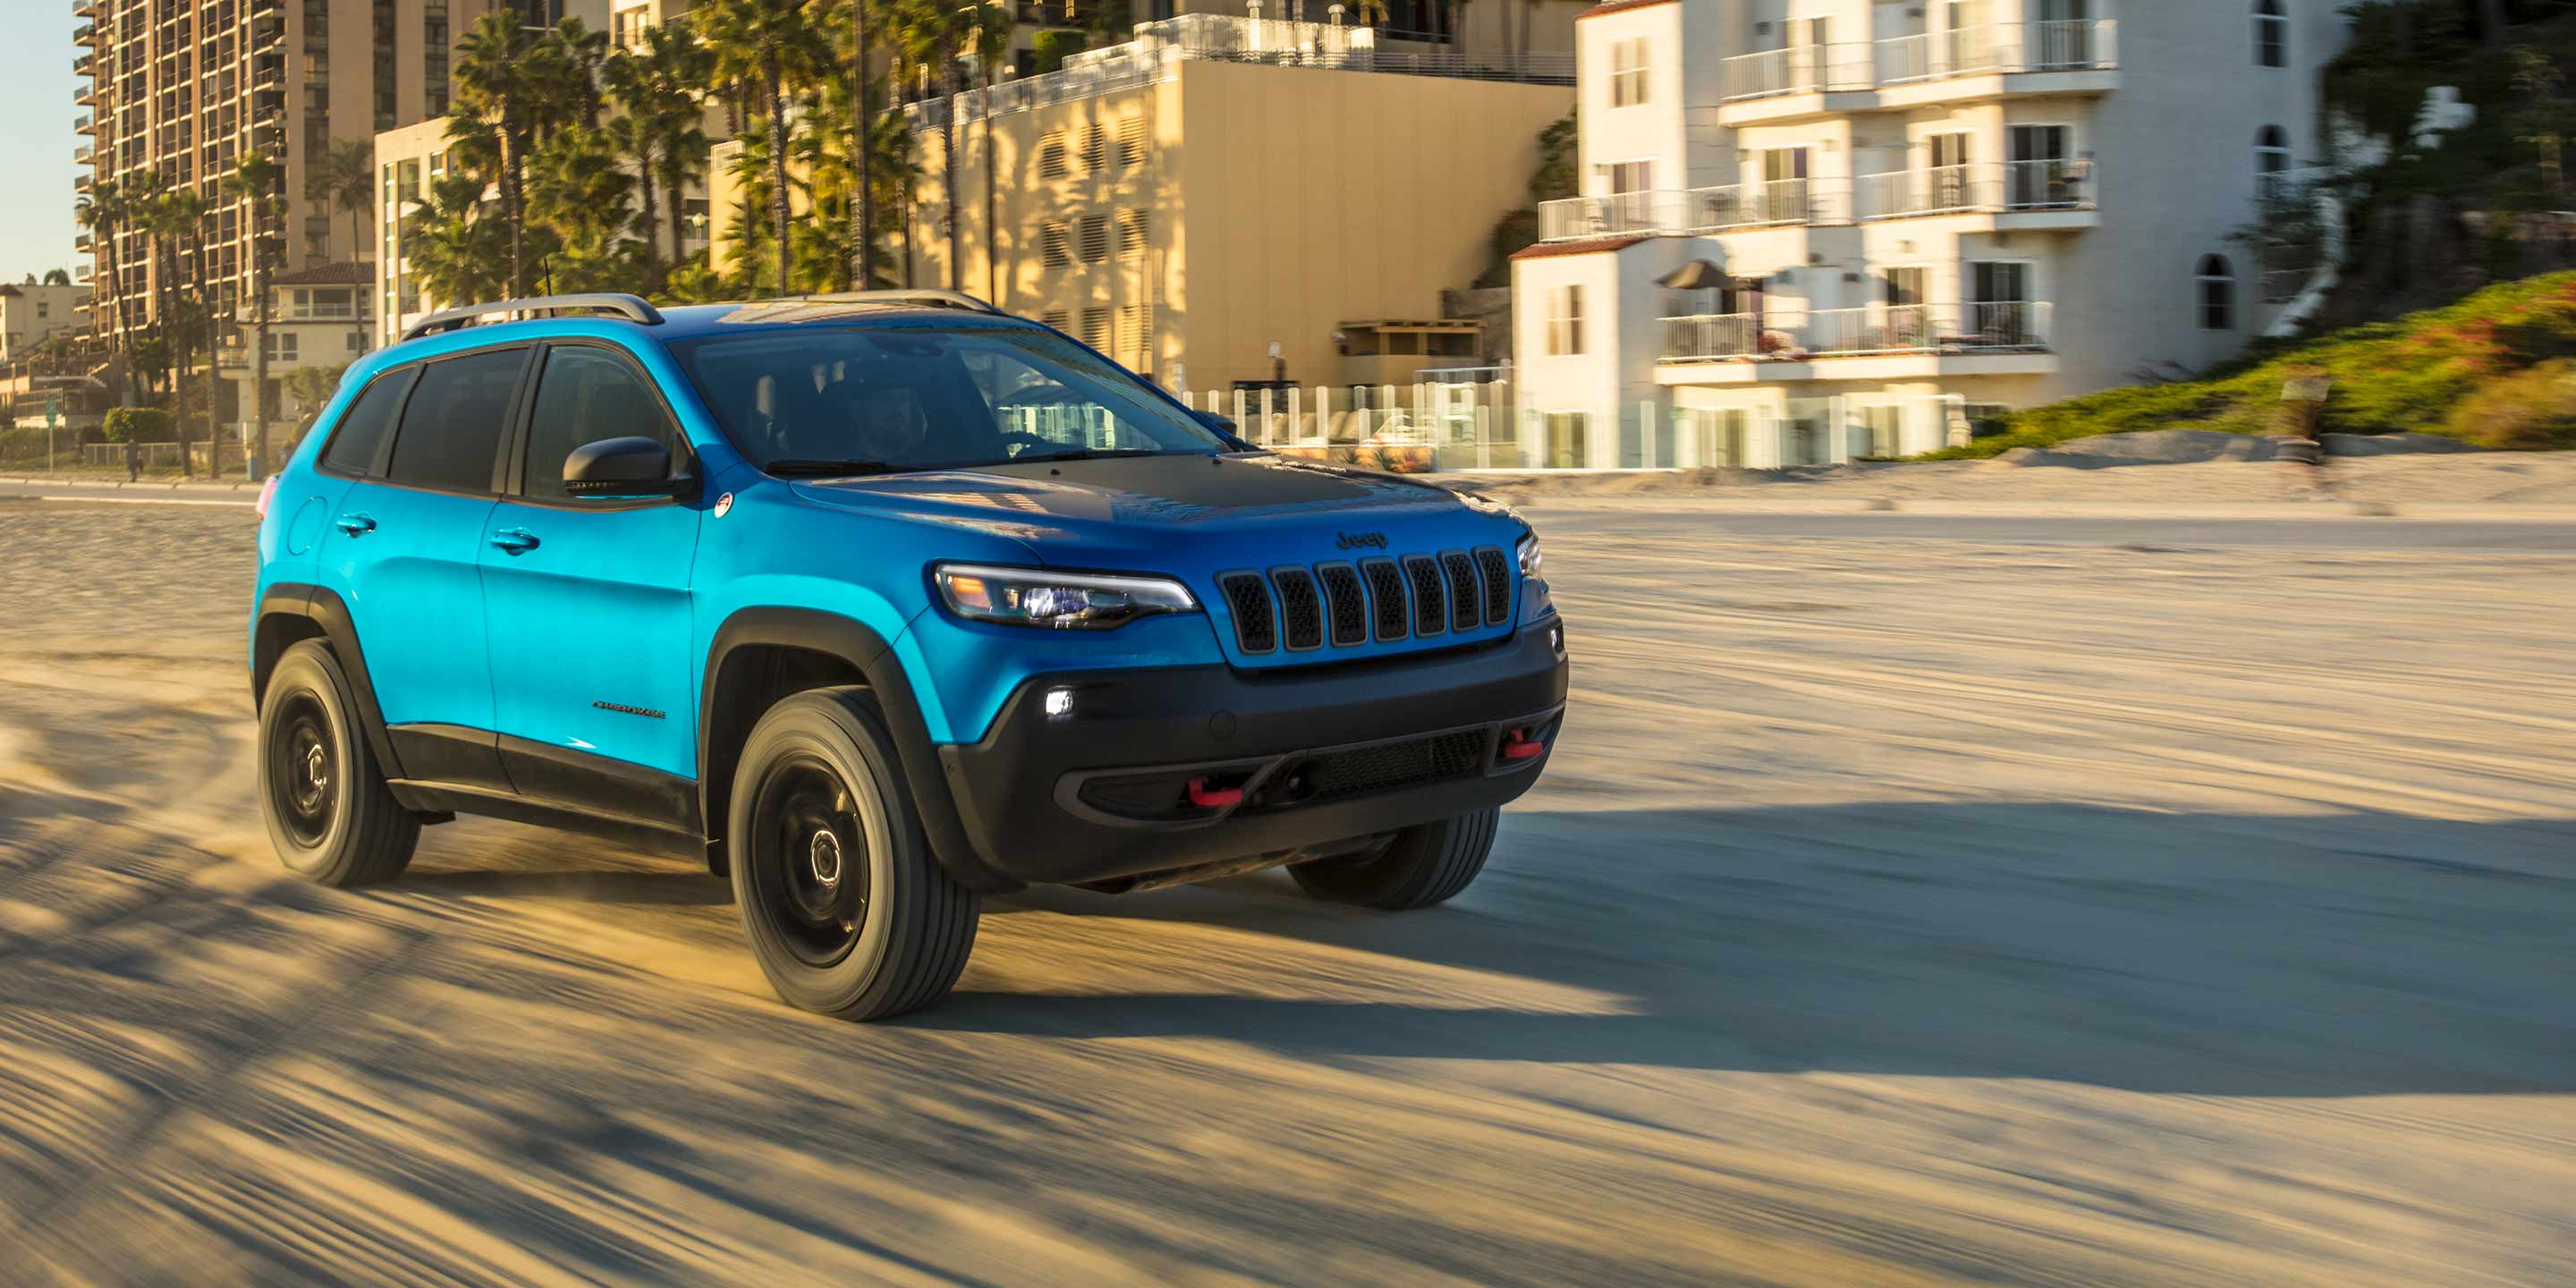 Jeep Cherokee Lease >> 2019 Jeep Cherokee Lease Financing Deals Central Nj